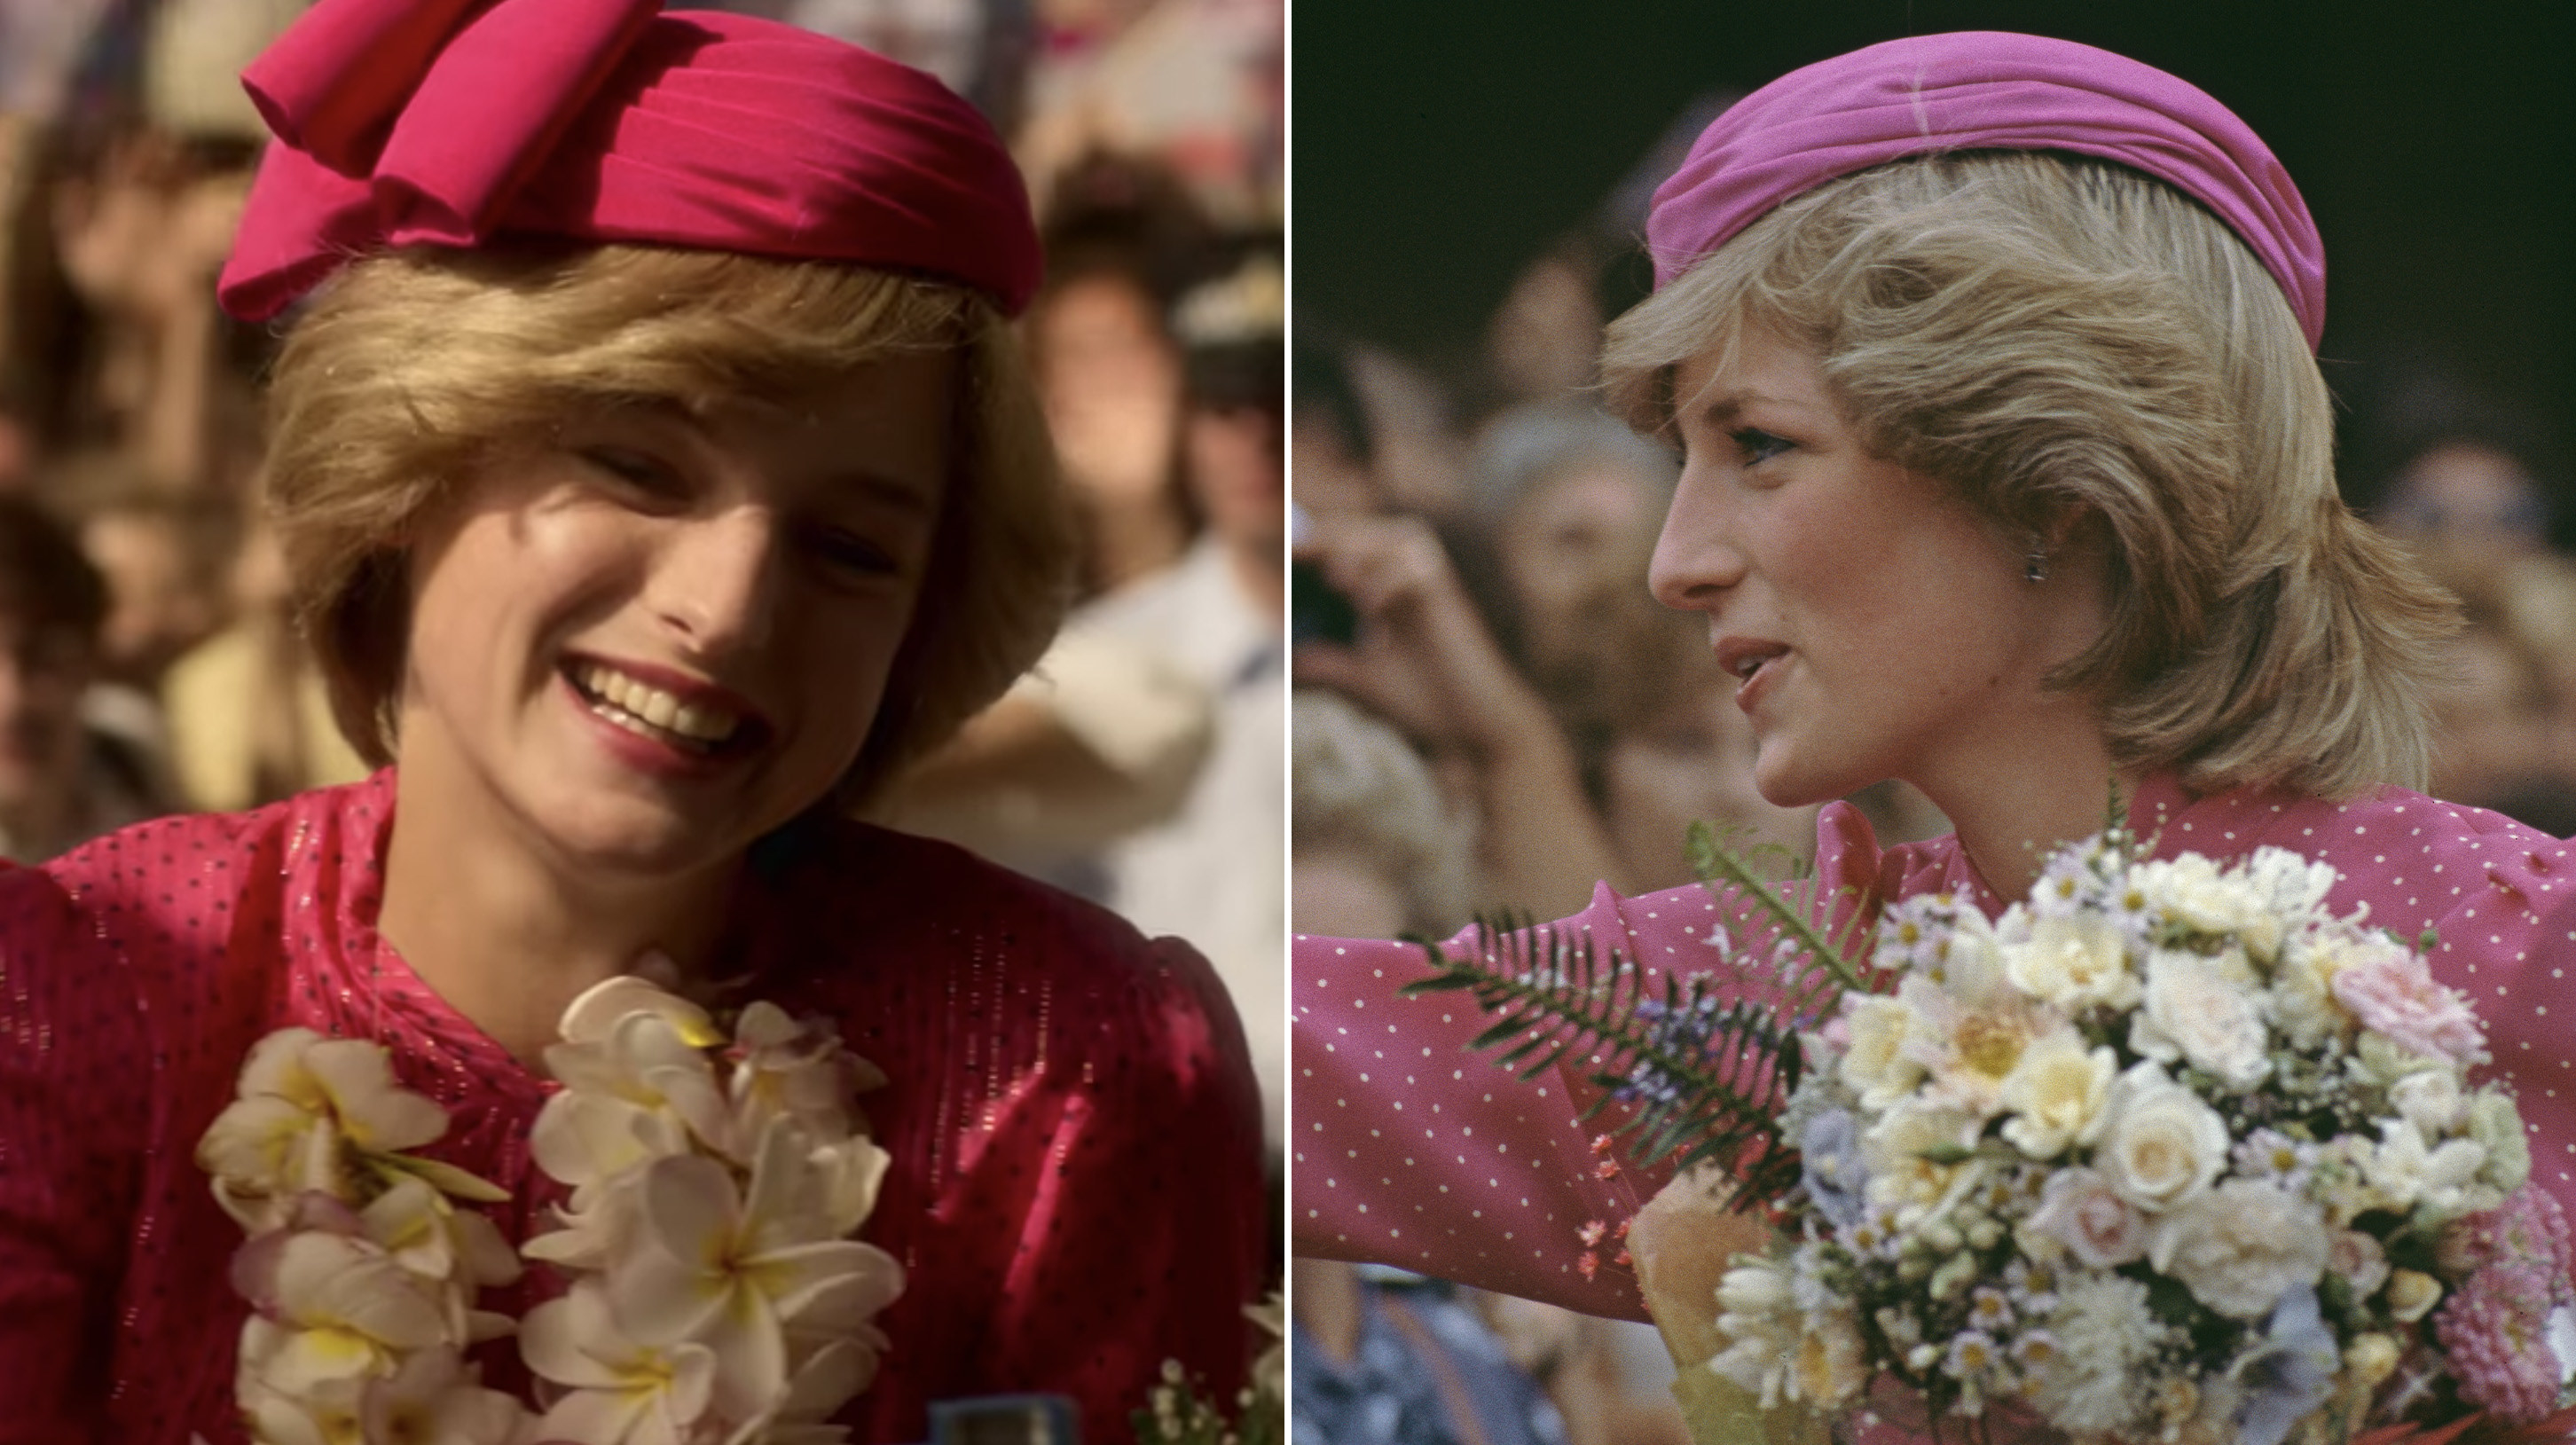 Emma as Princess Diana of the left holding a bouquet of flowers, and Princess Diana on the right